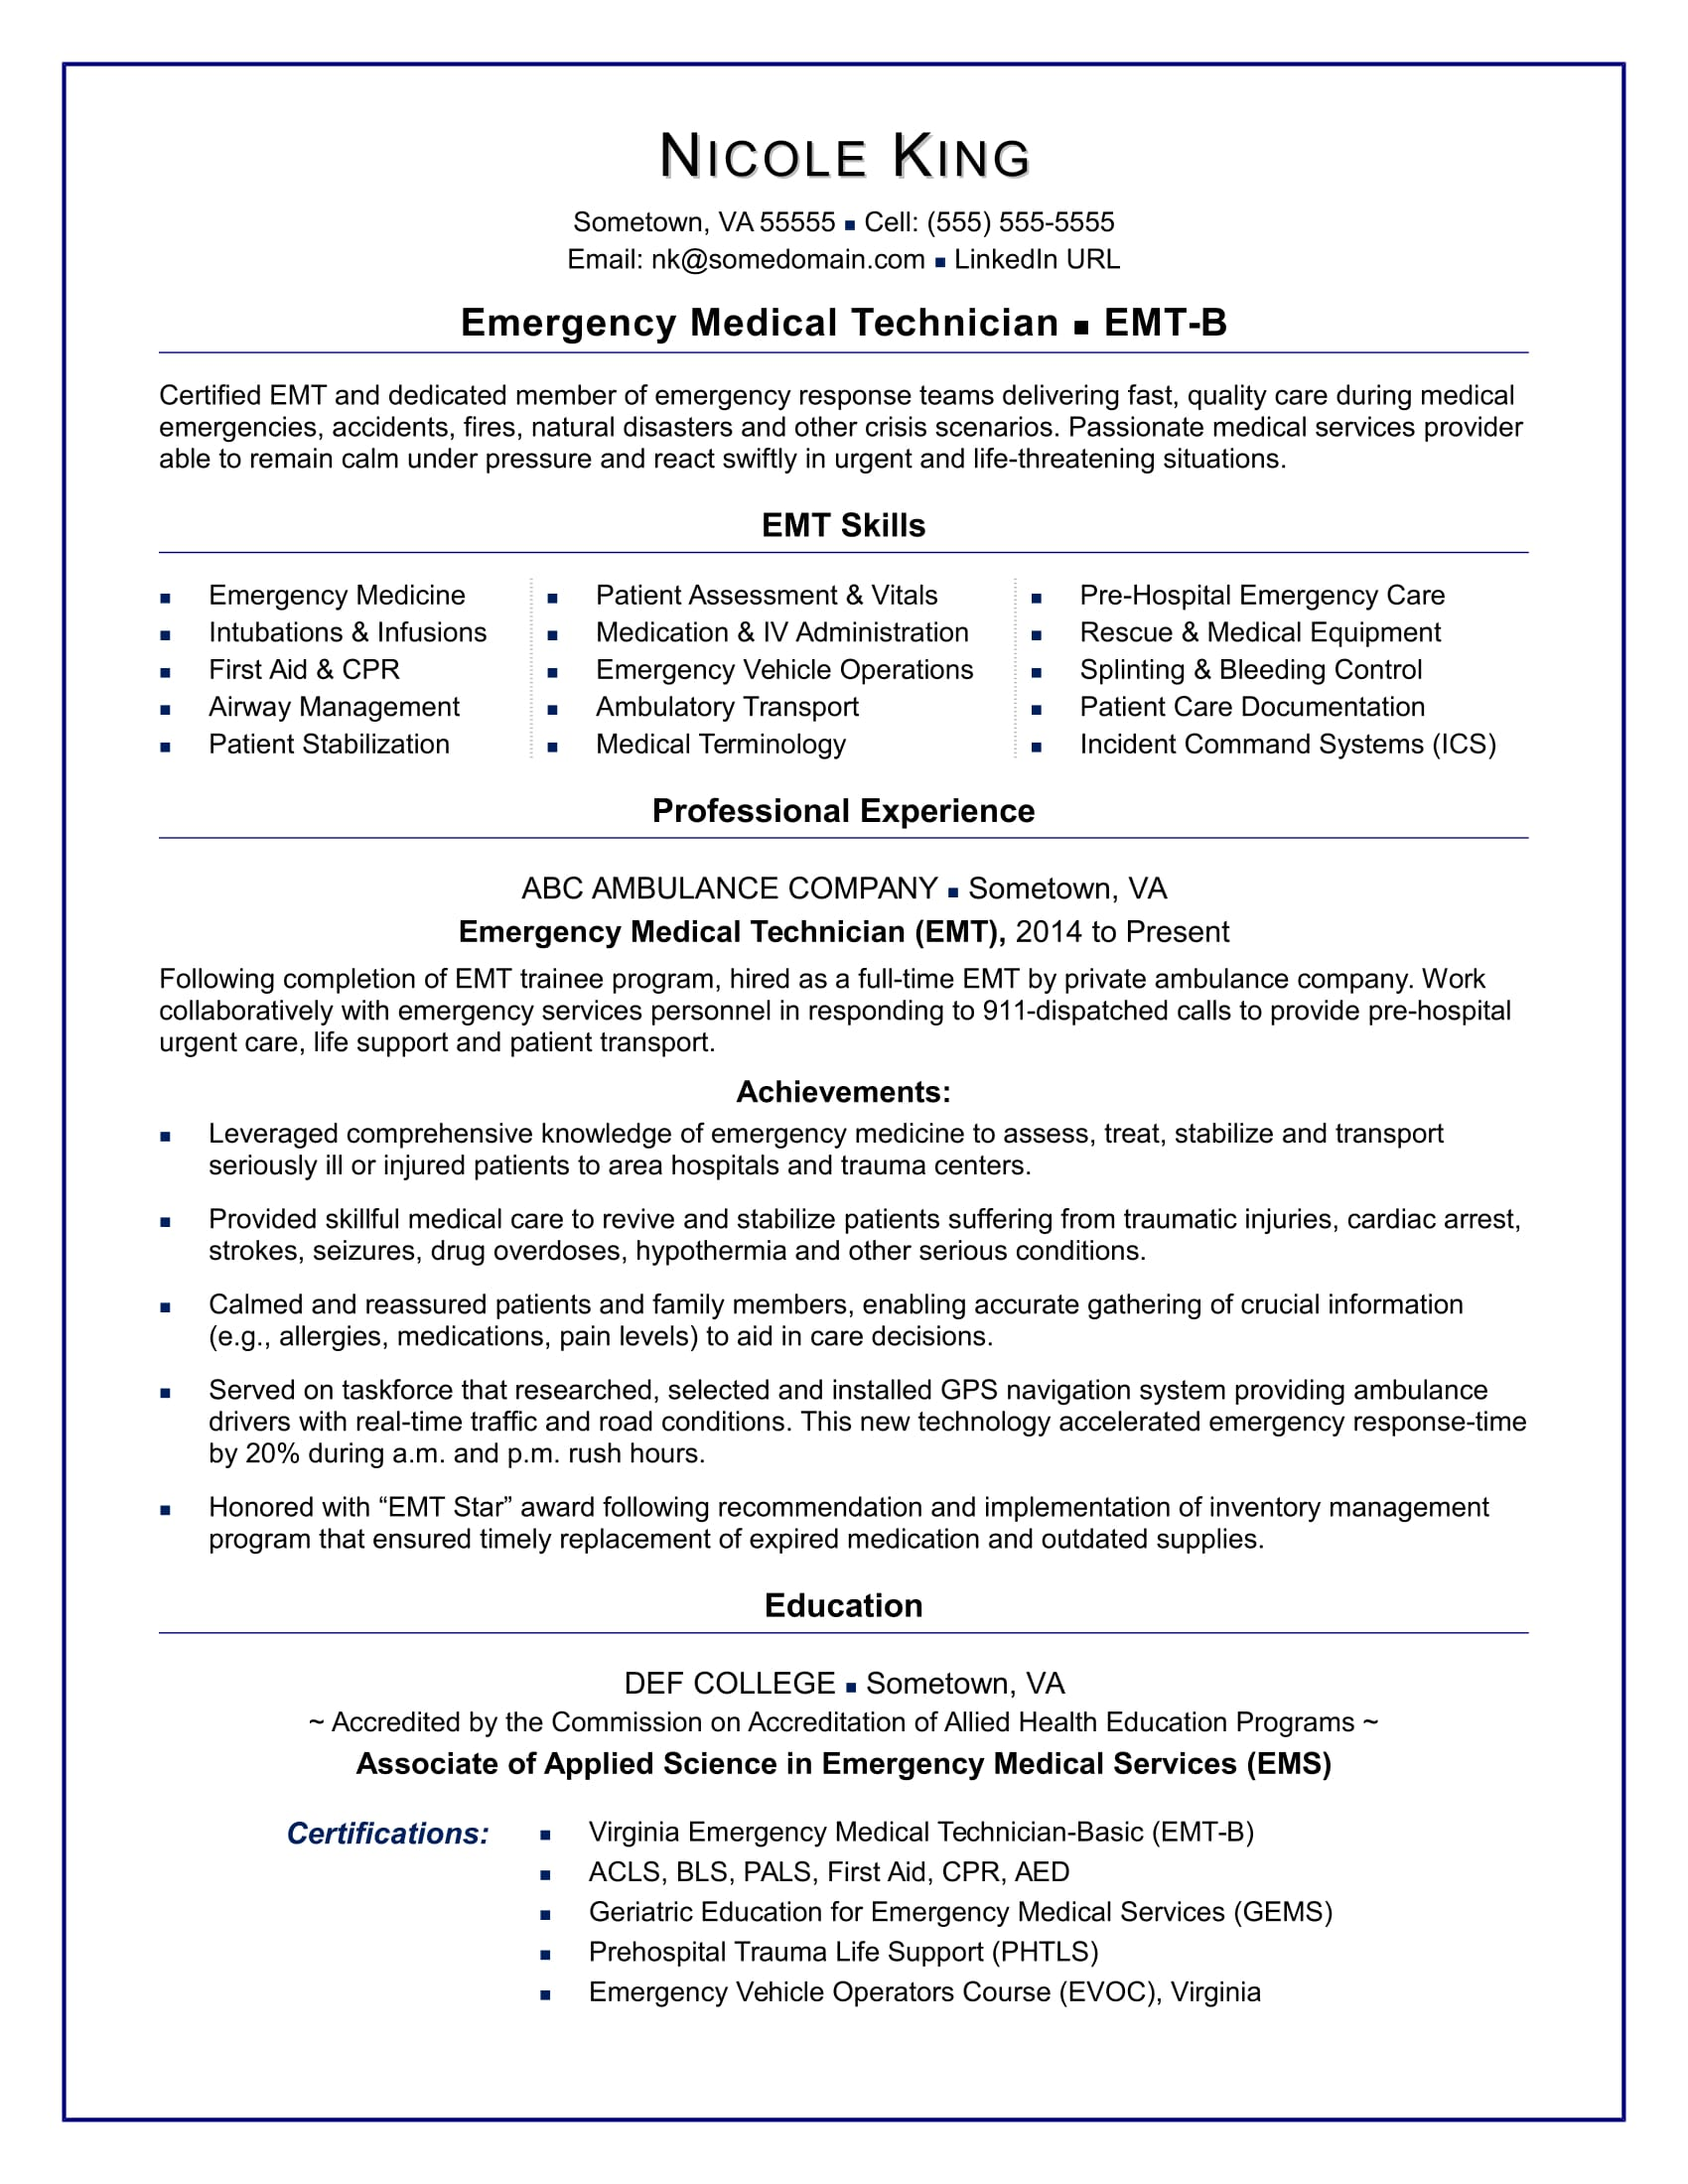 EMT Resume Sample | Monster.com